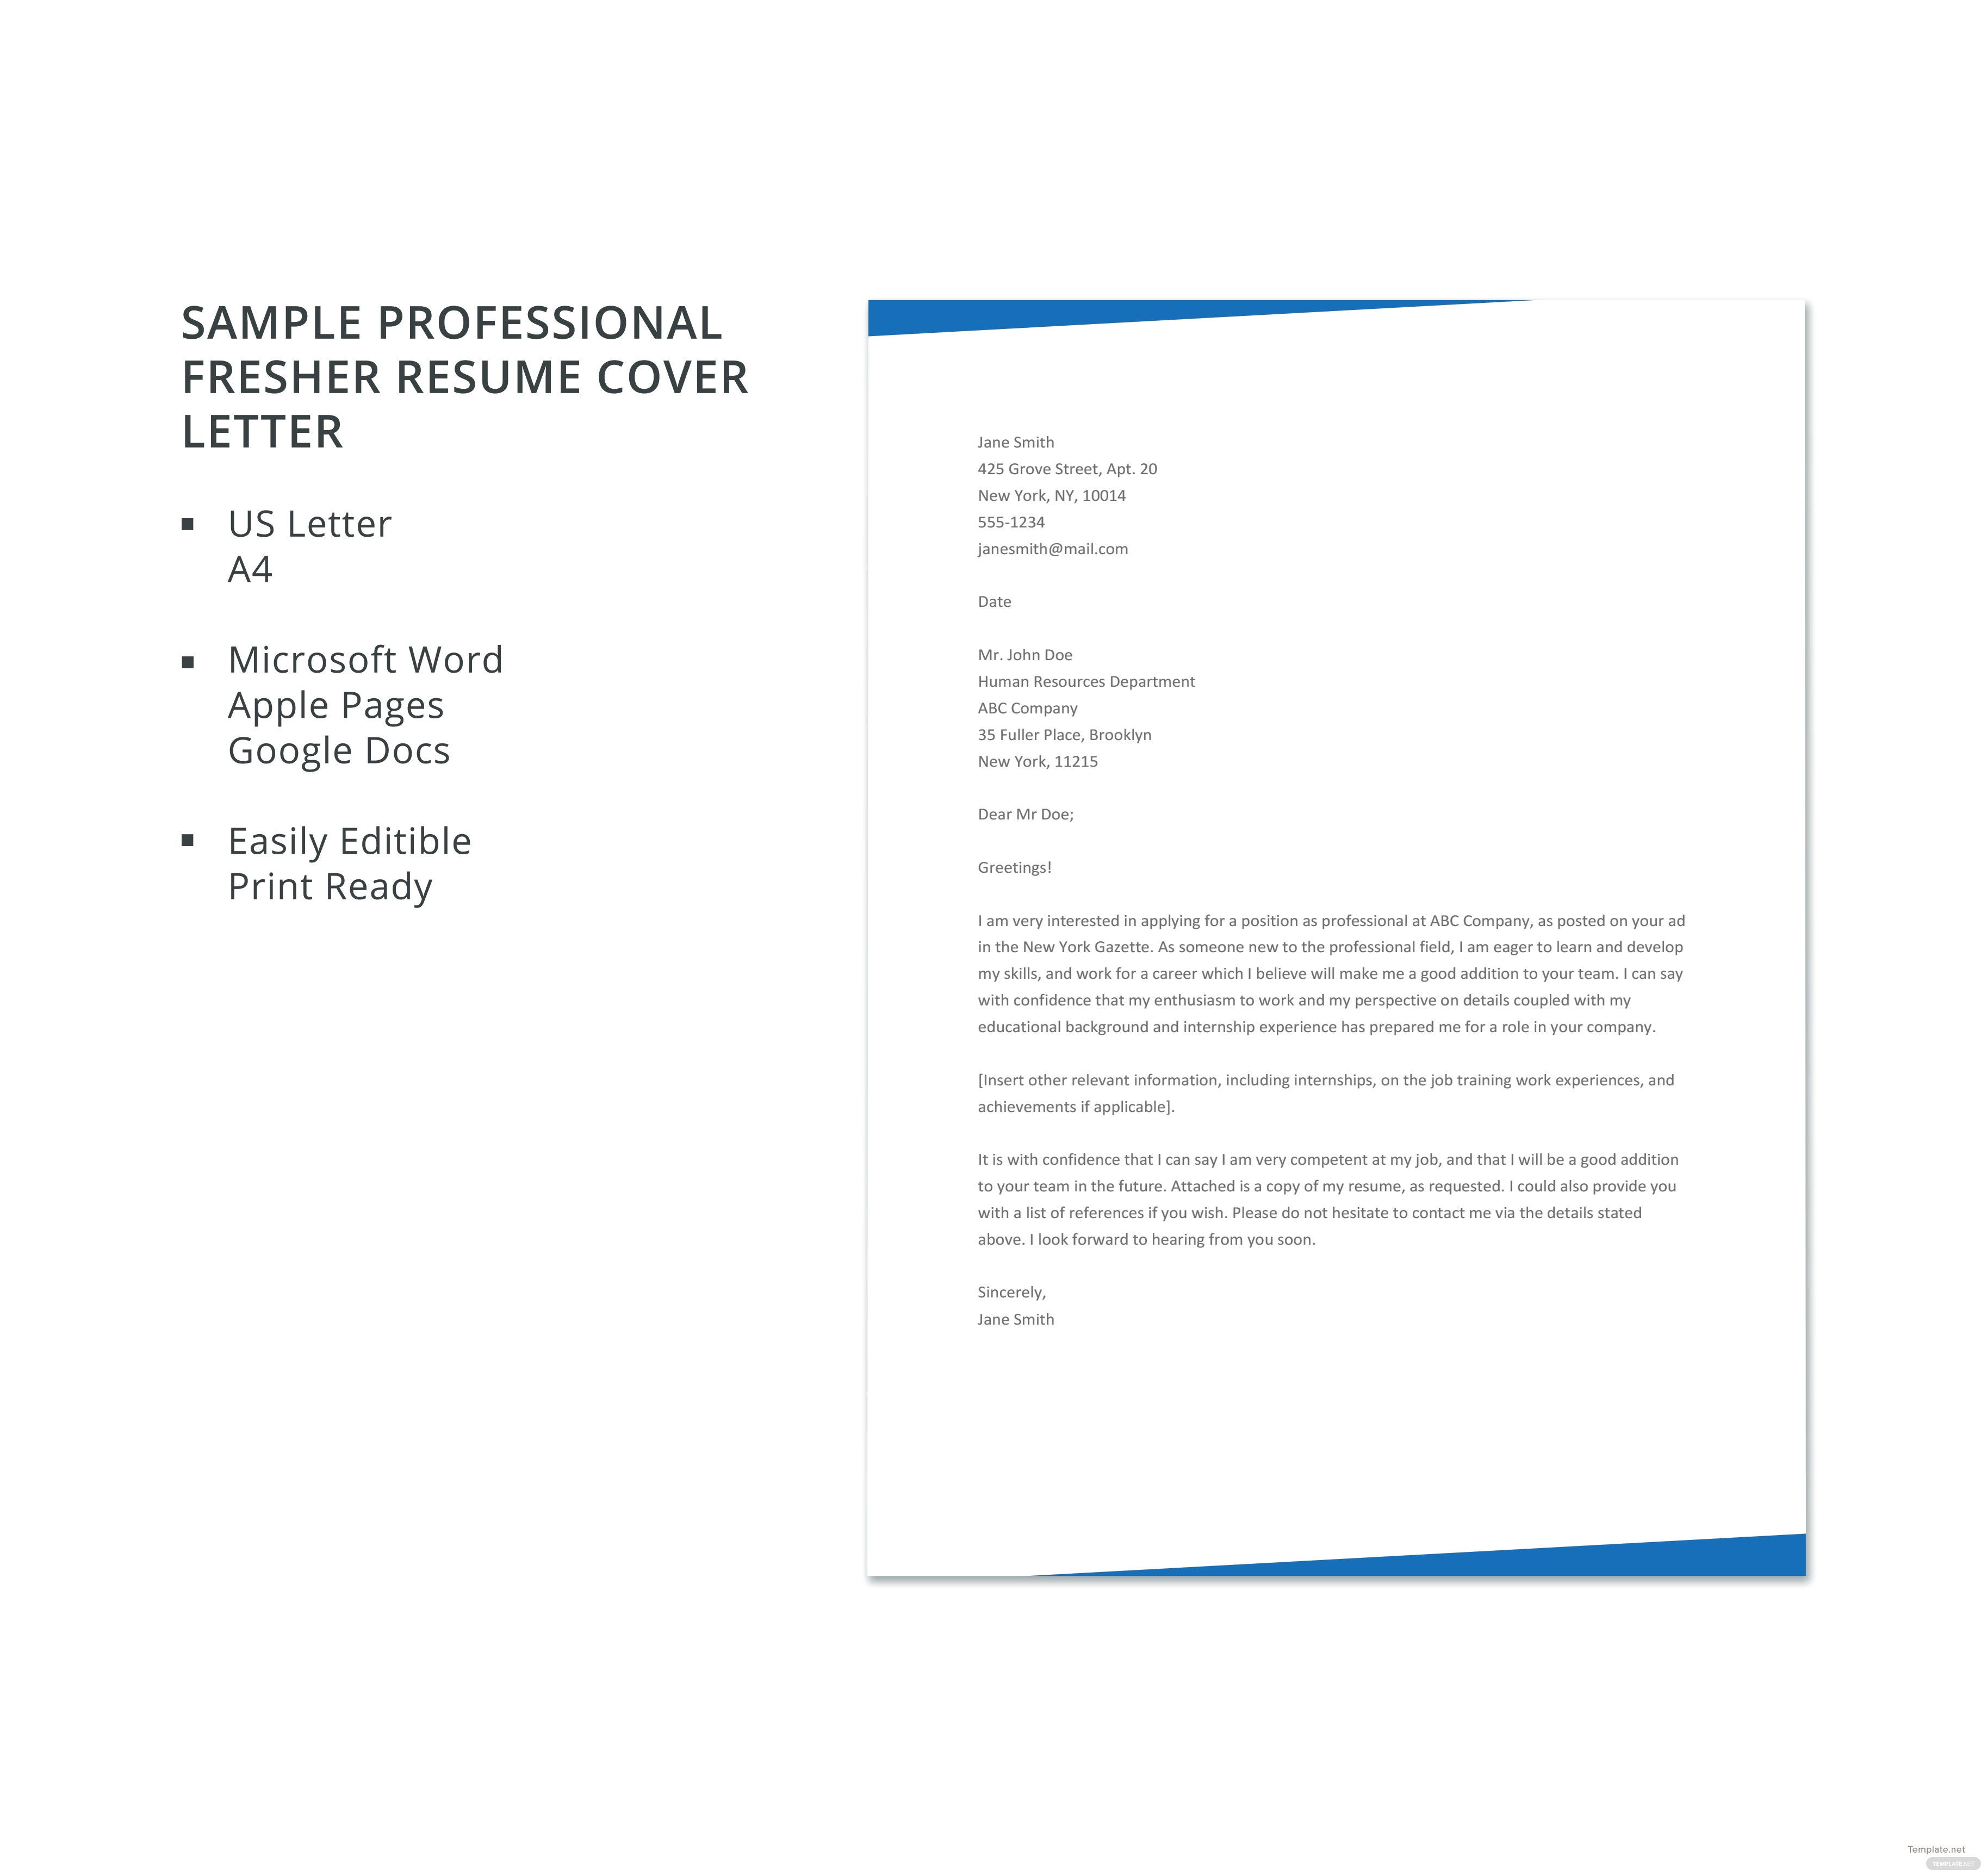 free sample professional fresher resume cover letter